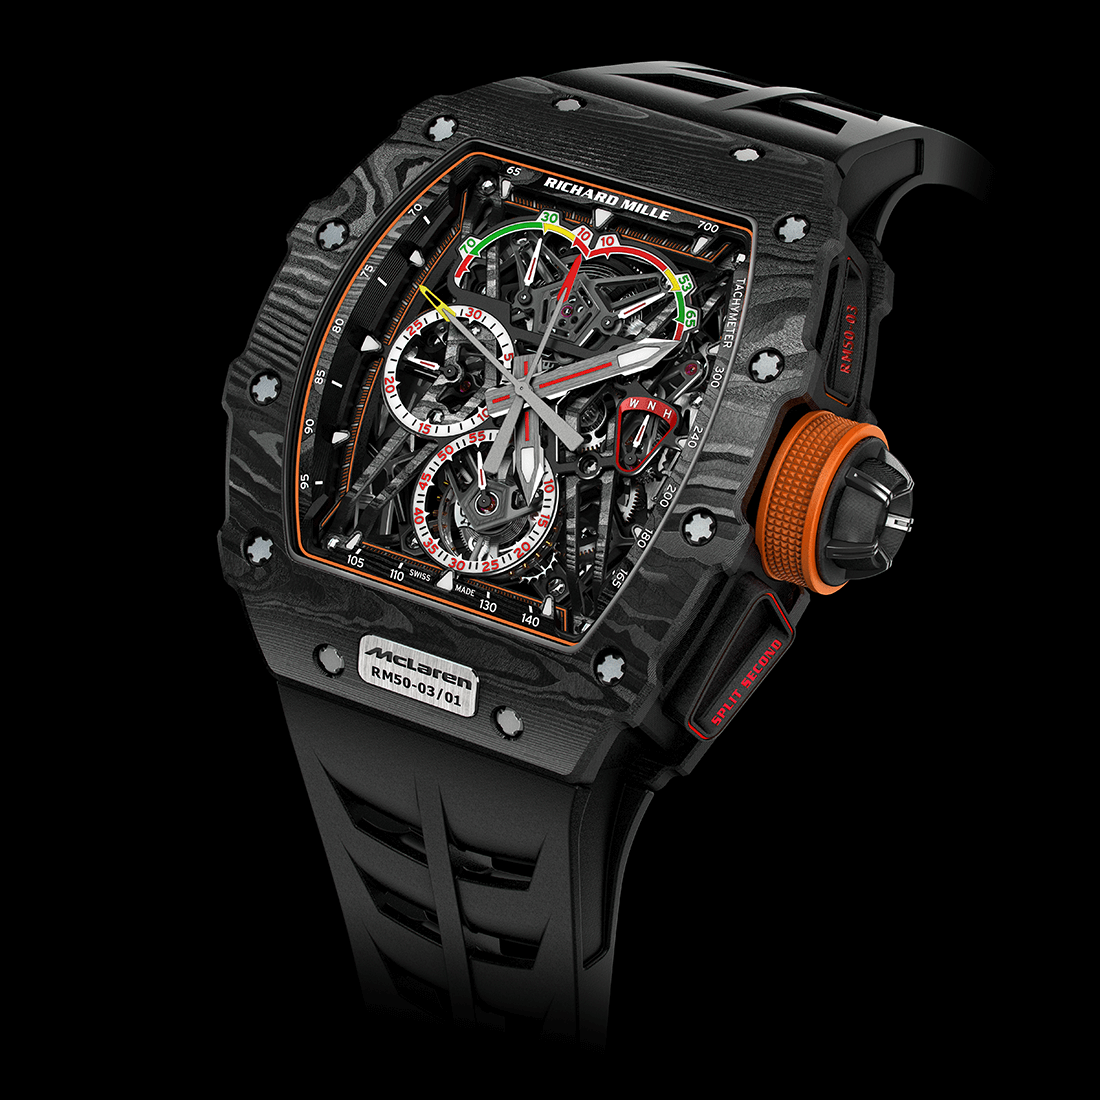 Richard Mille RM-50-03 most expensive watches